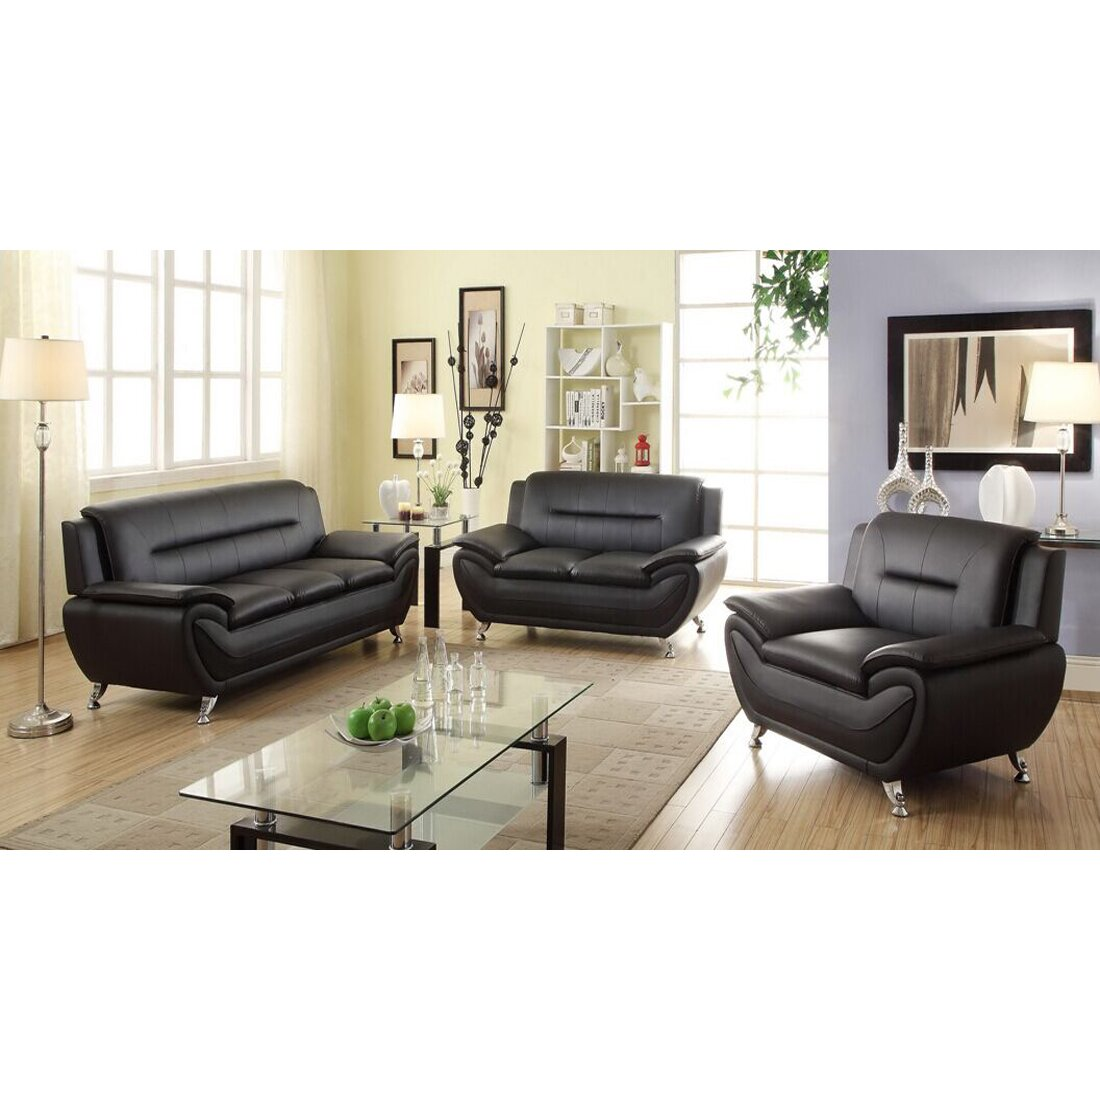 Contemporary 3 Piece Leather Living Room Set Ensign - Beautiful ...